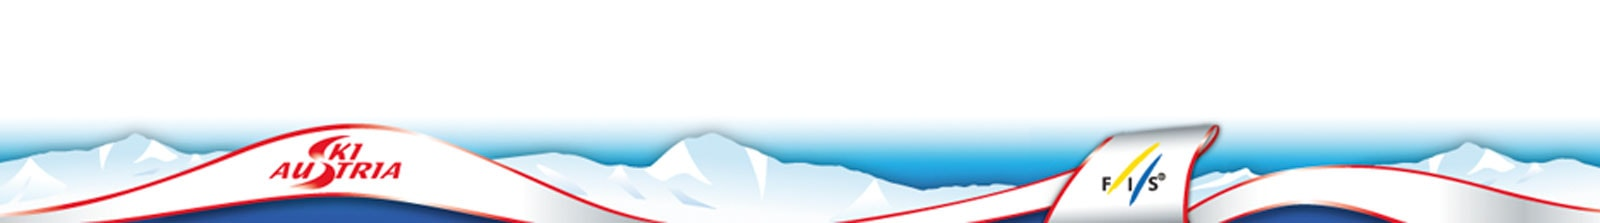 sponsoren-partner-arlberg-kandahar-rennen-ski-world-cup-ladies-stanton-arlberg